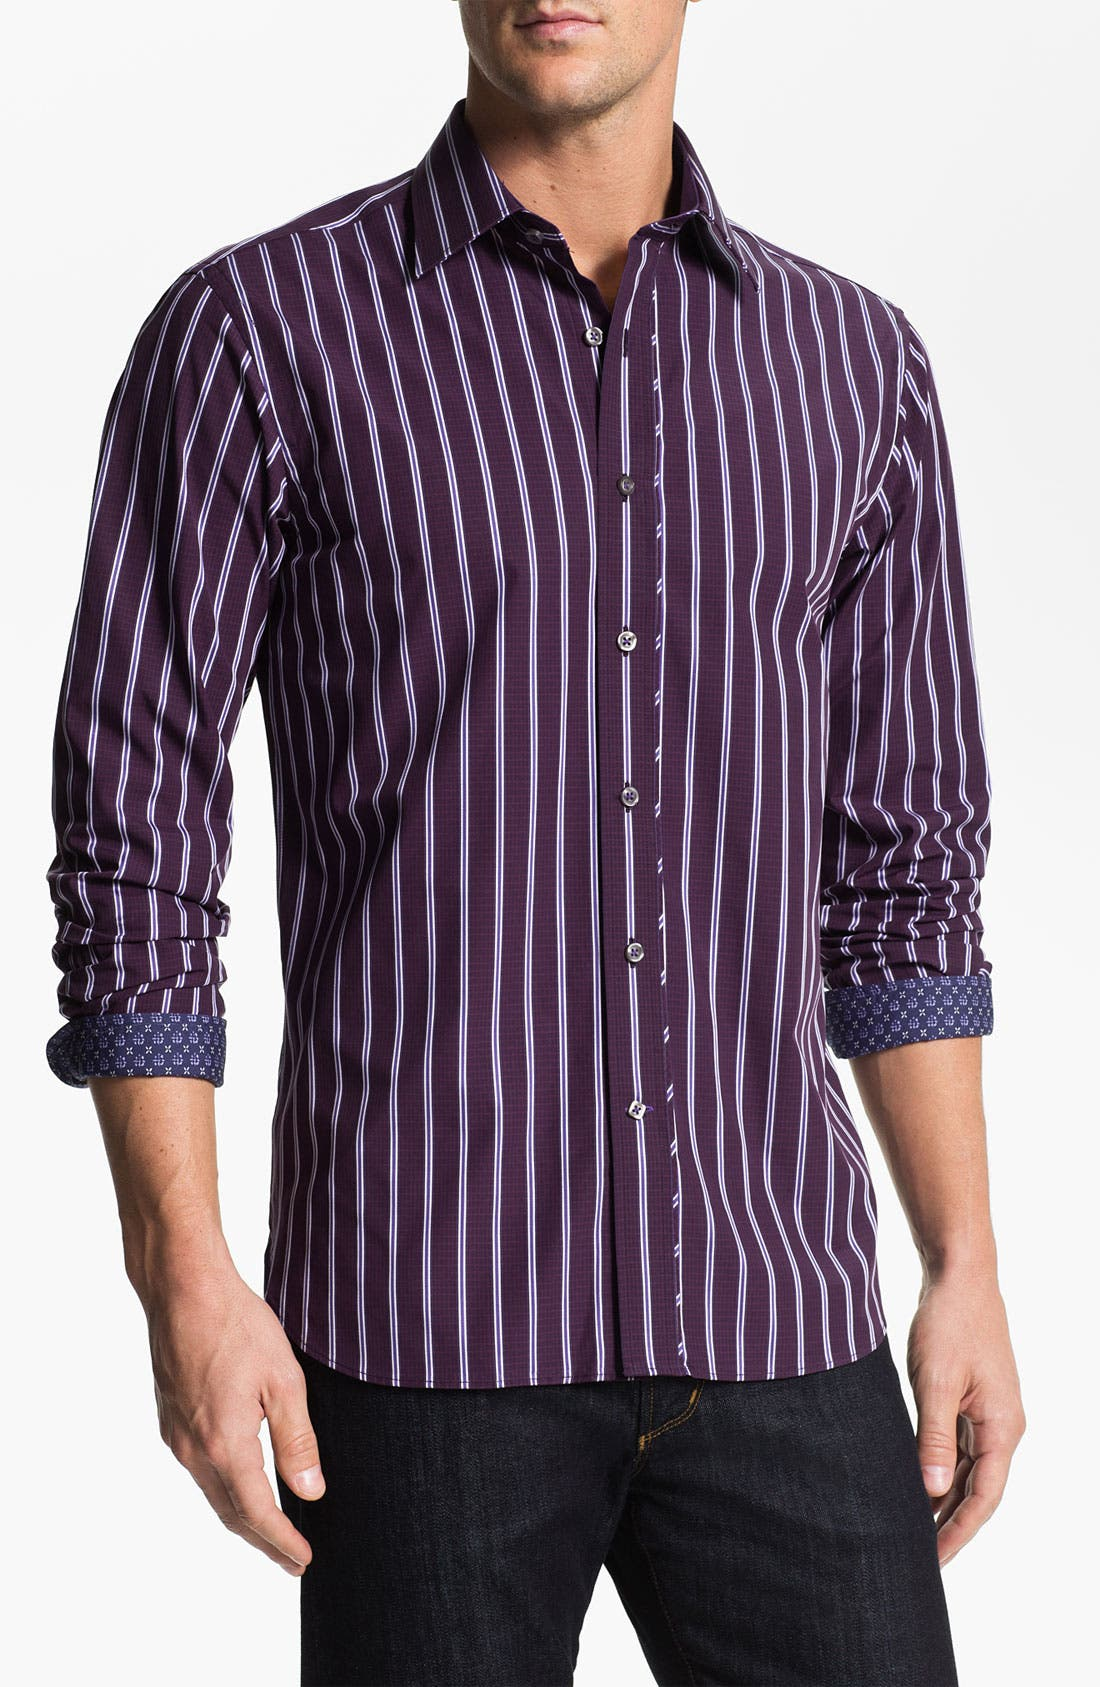 Alternate Image 1 Selected - Report Collection Cotton Sport Shirt (Online Exclusive)